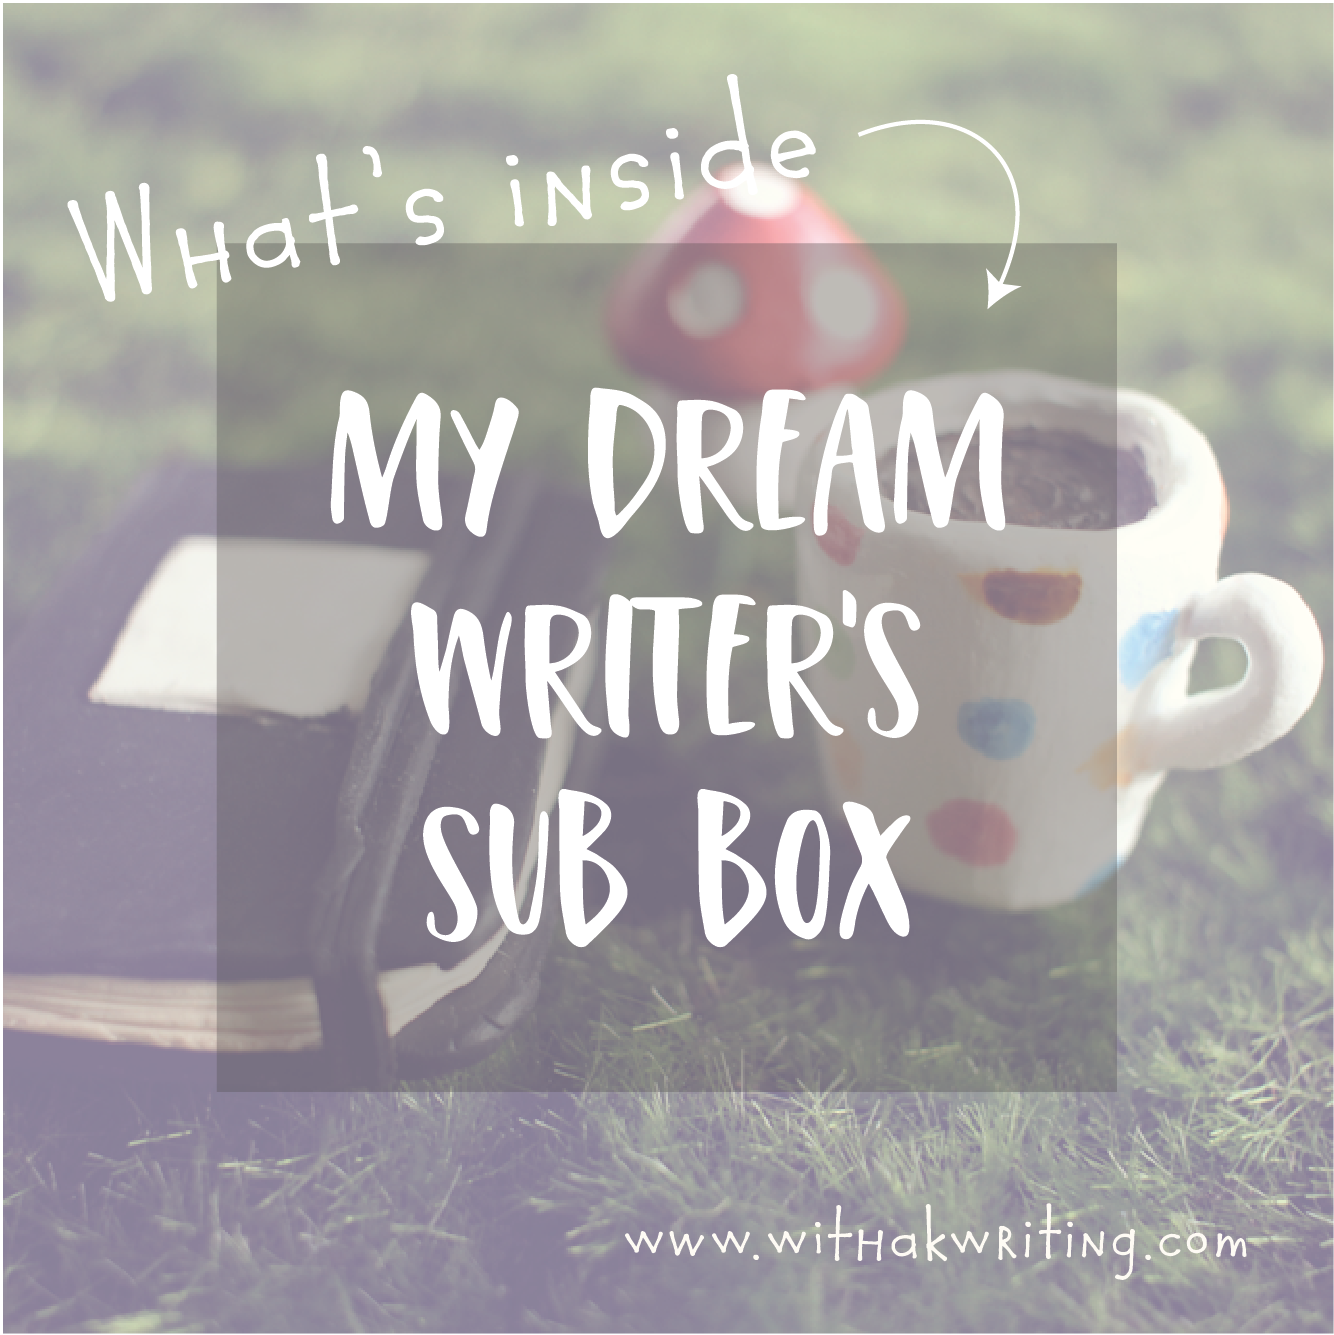 If I had a Writers' Sub Box for #30DaysWithaK today, what would I put in it?